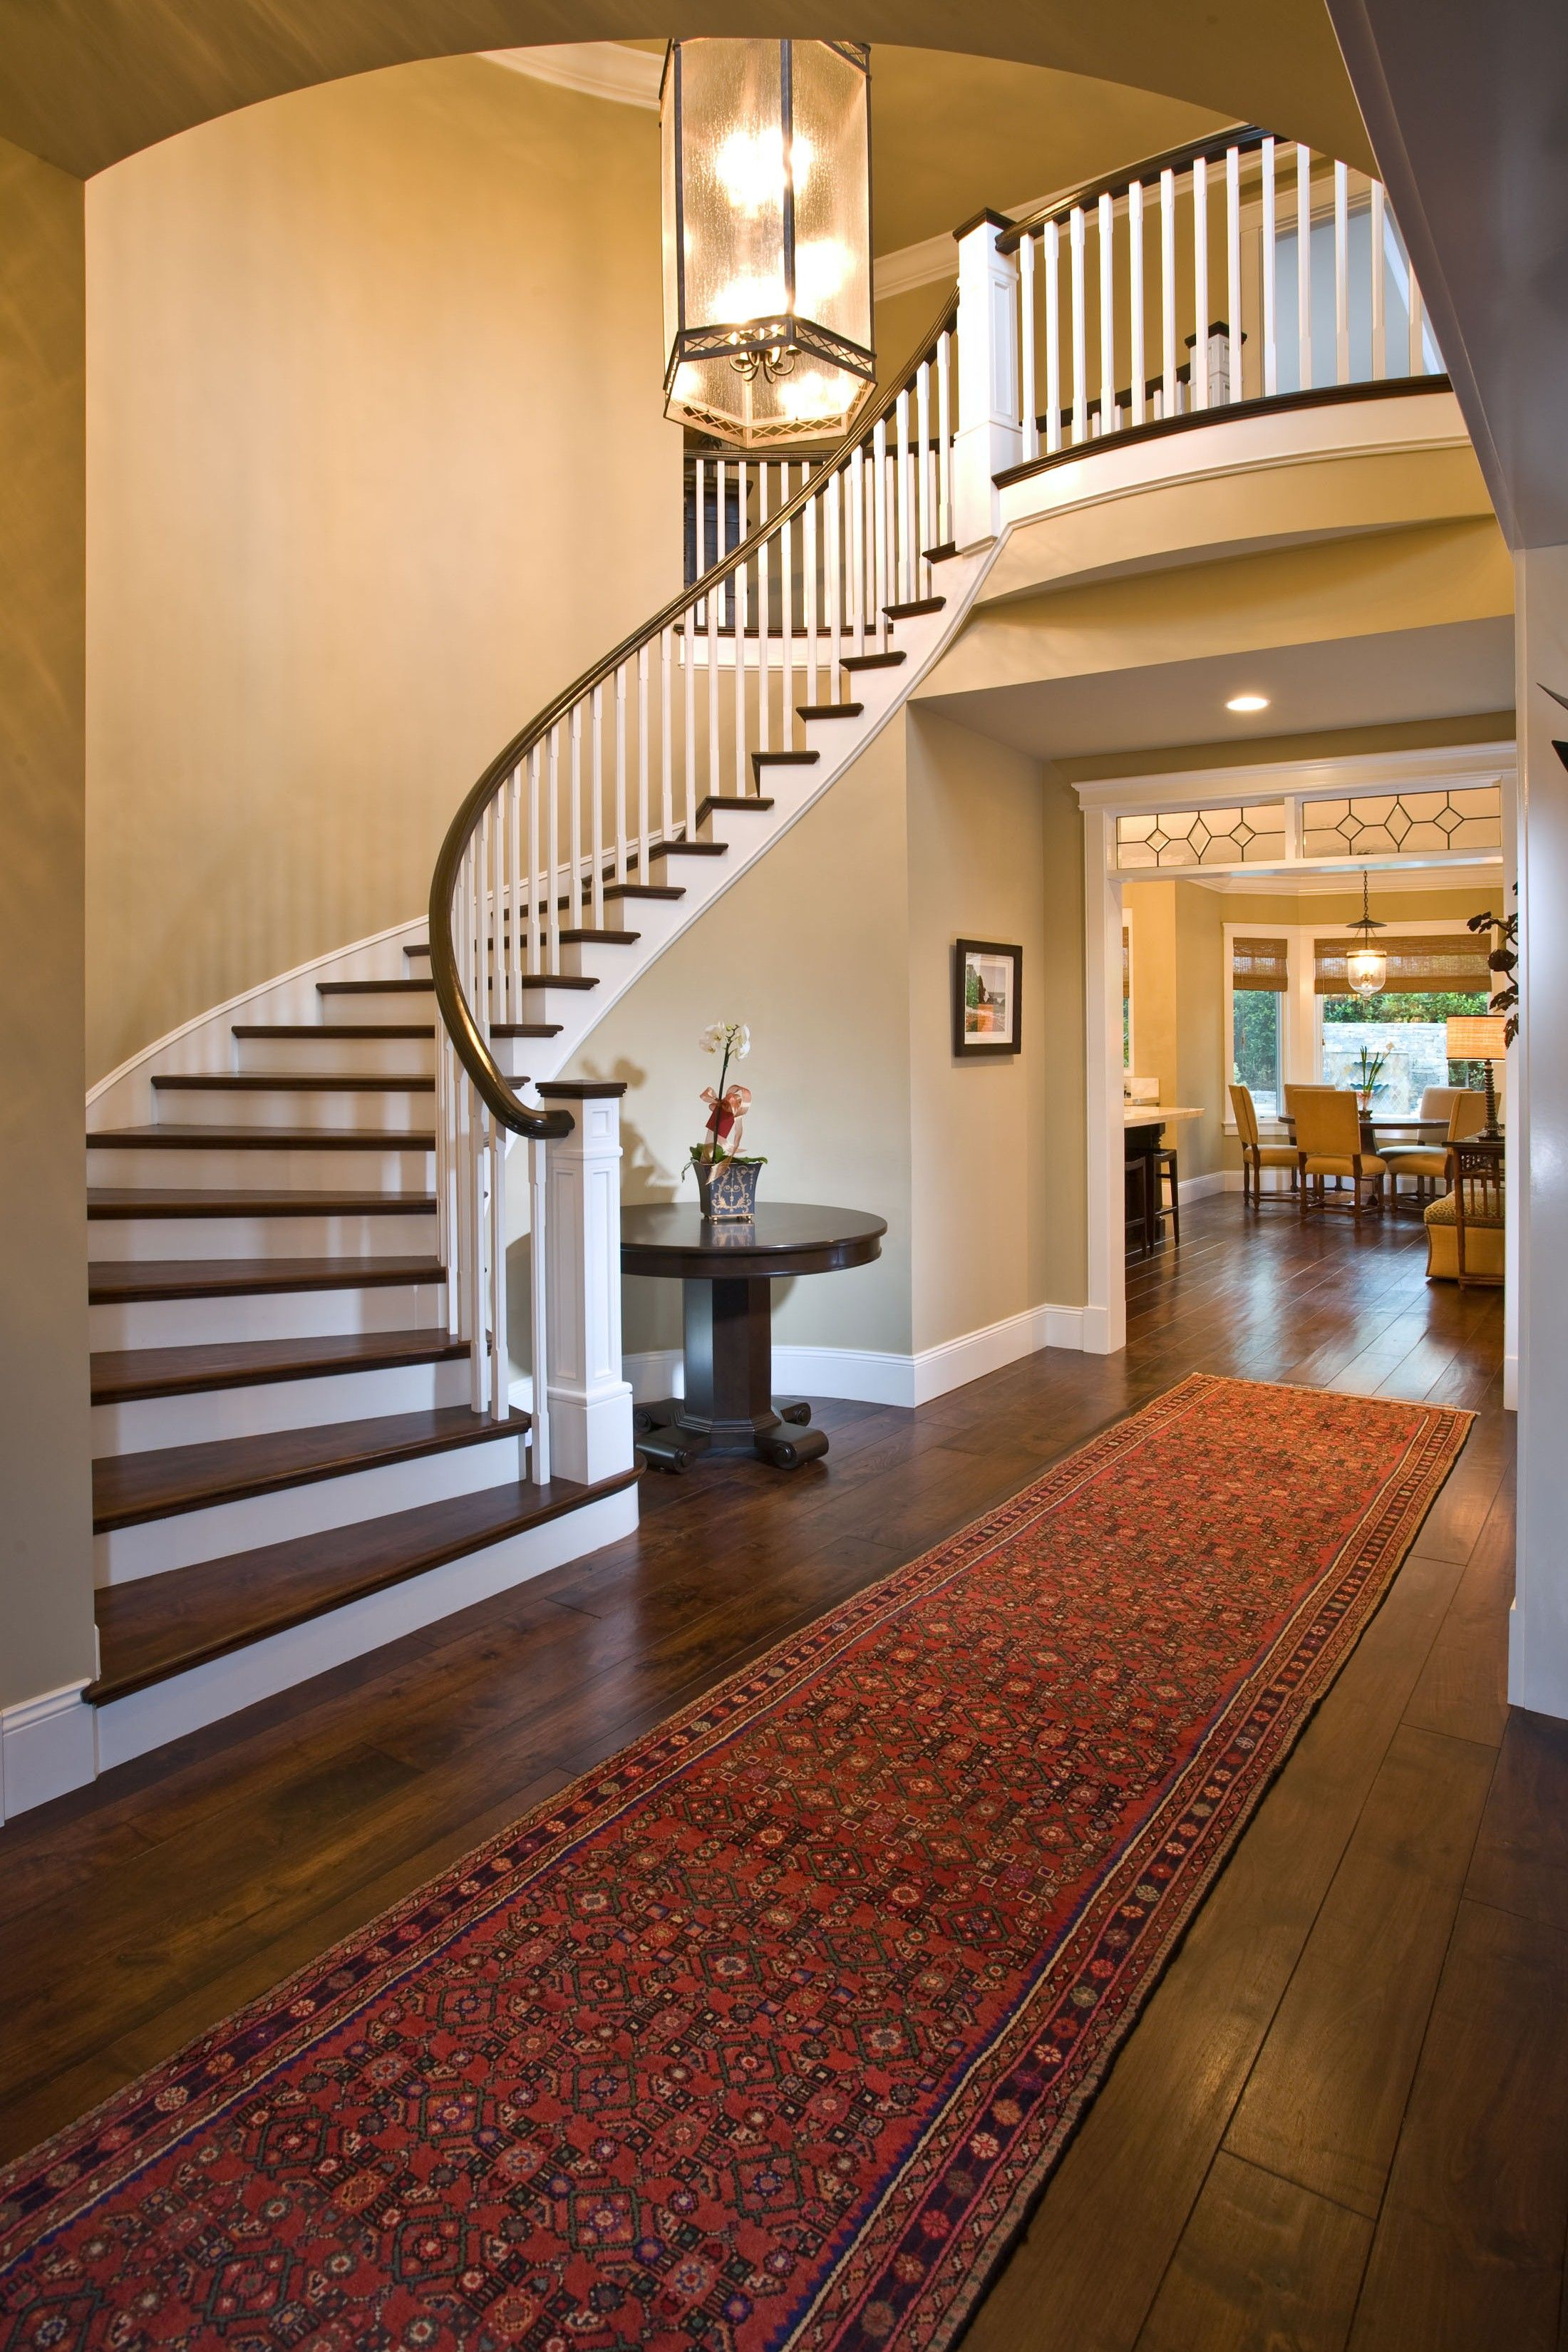 Captivating Staircase Builder,staircases,custom Staircases,staircase Contractor